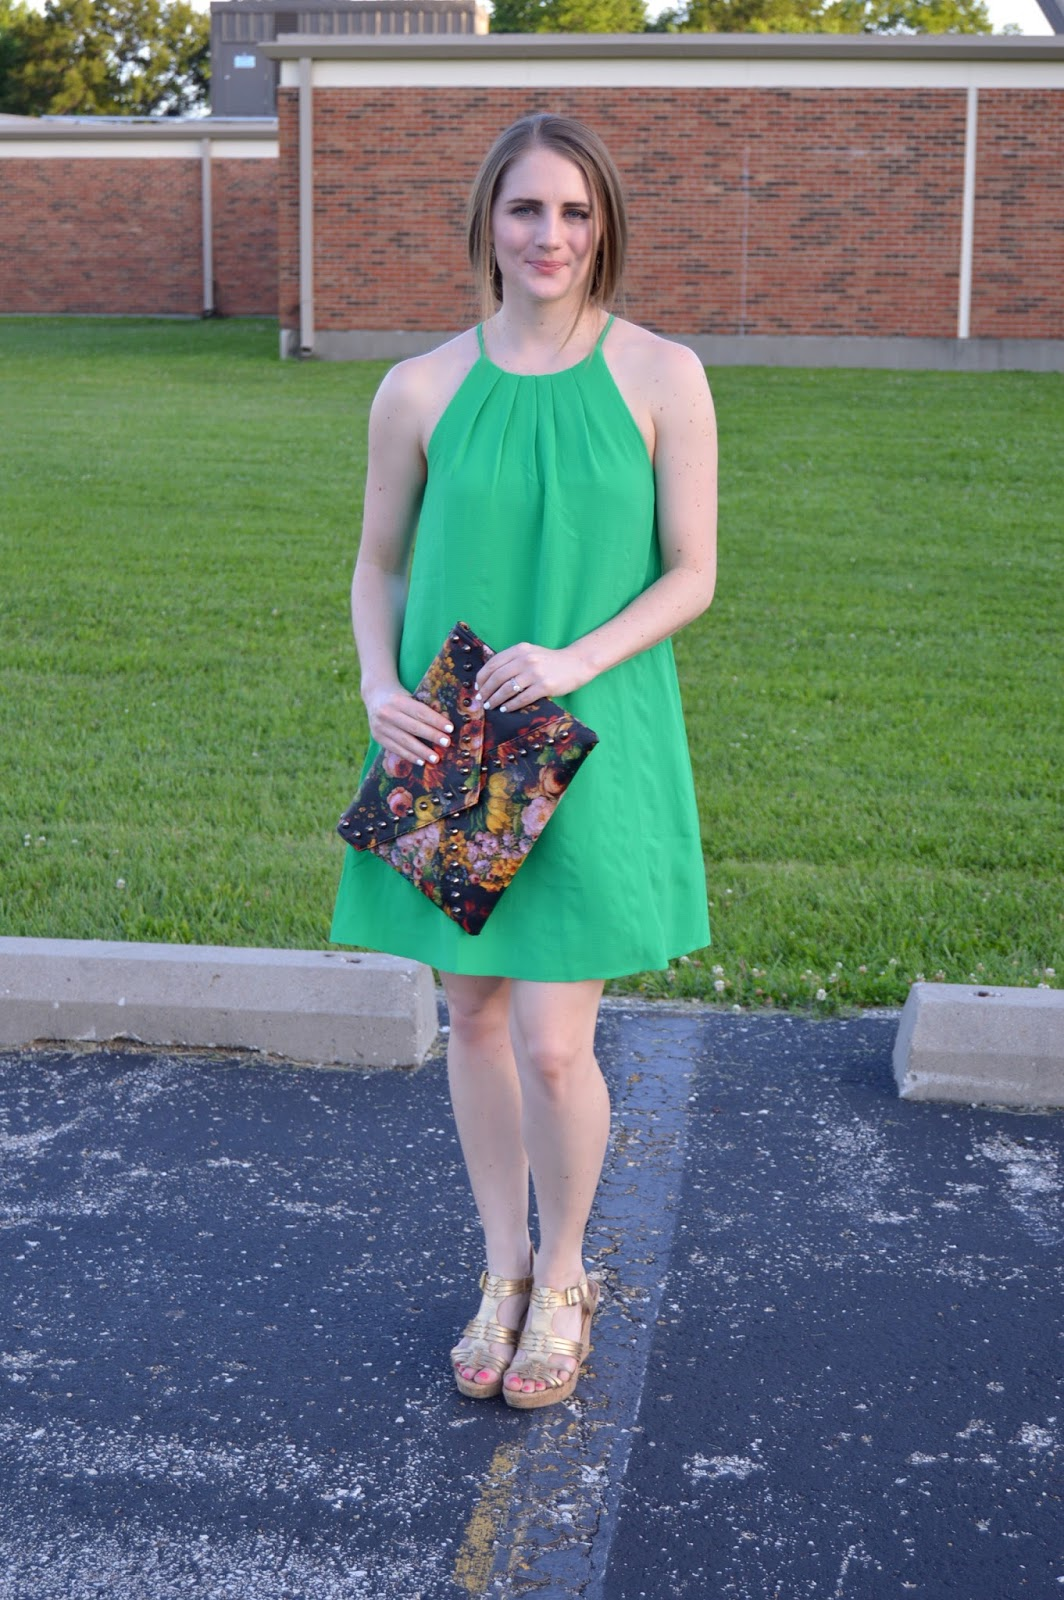 what to pair with a green dress | what to wear to a wedding | summer outfit ideas | mint julep boutique review | a memory of us | what to wear to a wedding this summer |